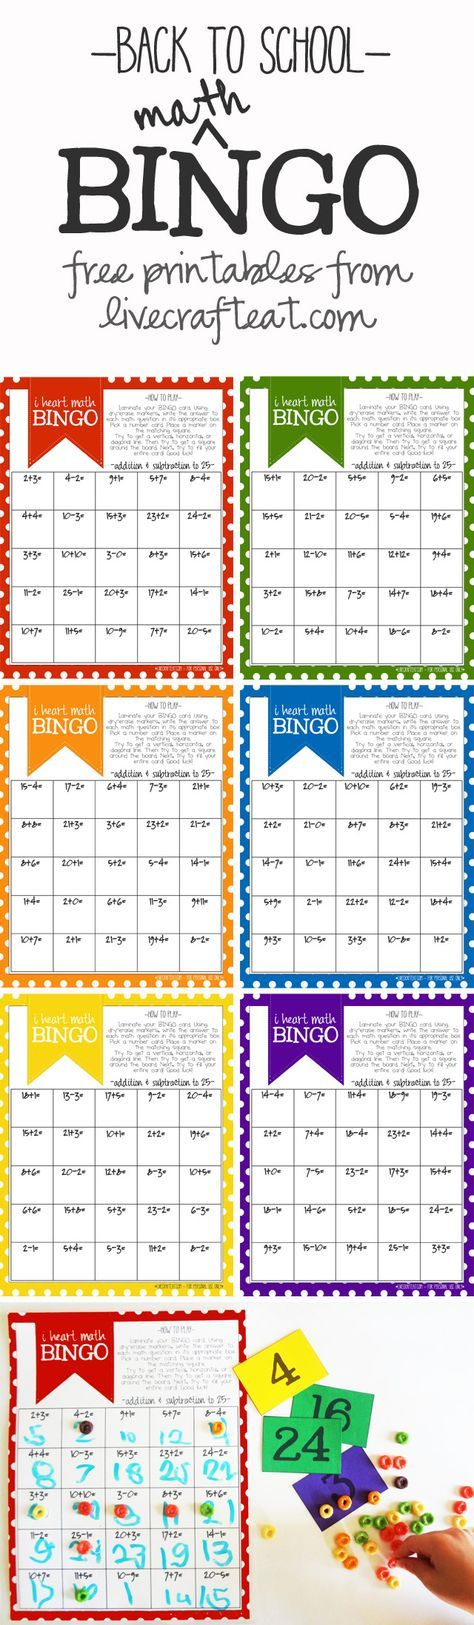 a fun back-to-school addition & subtraction bingo game for kids. 6 printable bingo cards with math questions equaling 1-25. free printables! | www.livecrafteat.com #kids #homeschool #printables